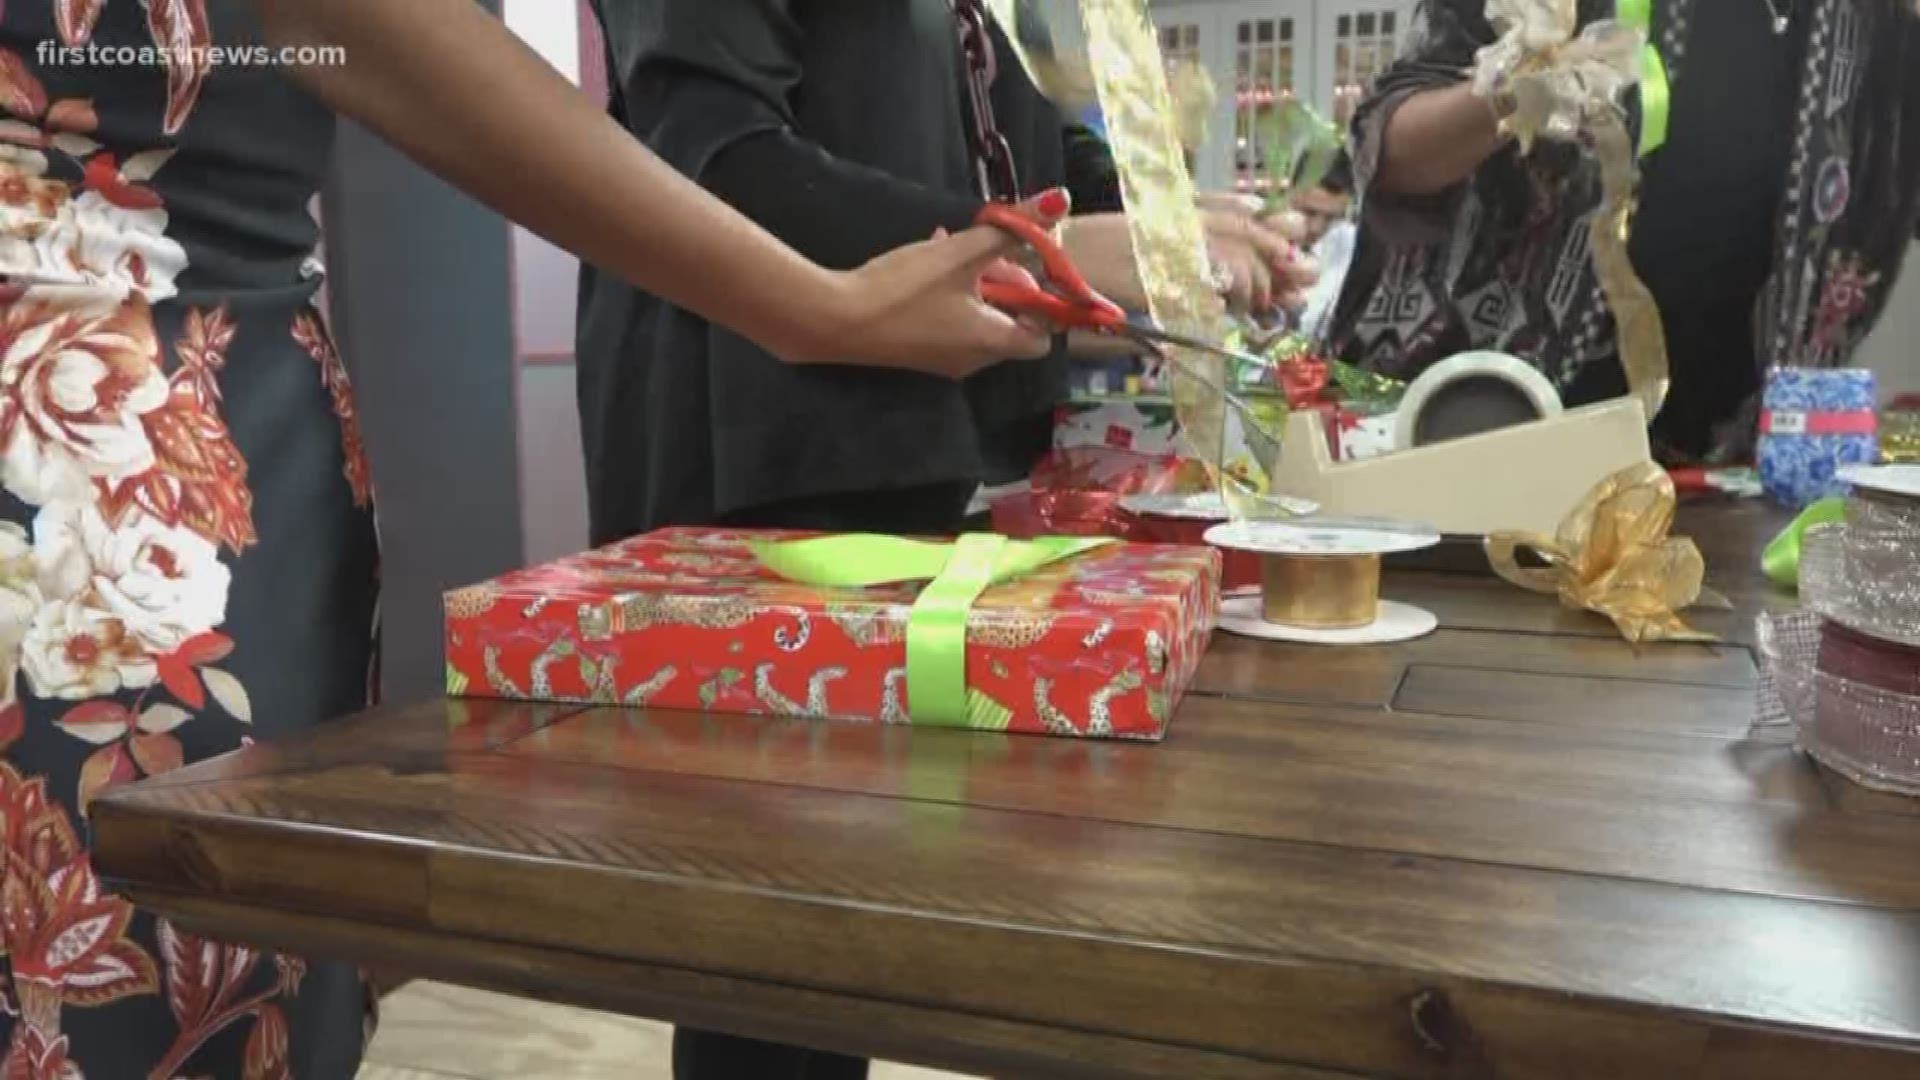 How To Wrap Gifts And Decorate Holiday Cookies Like A Pro Firstcoastnews Com